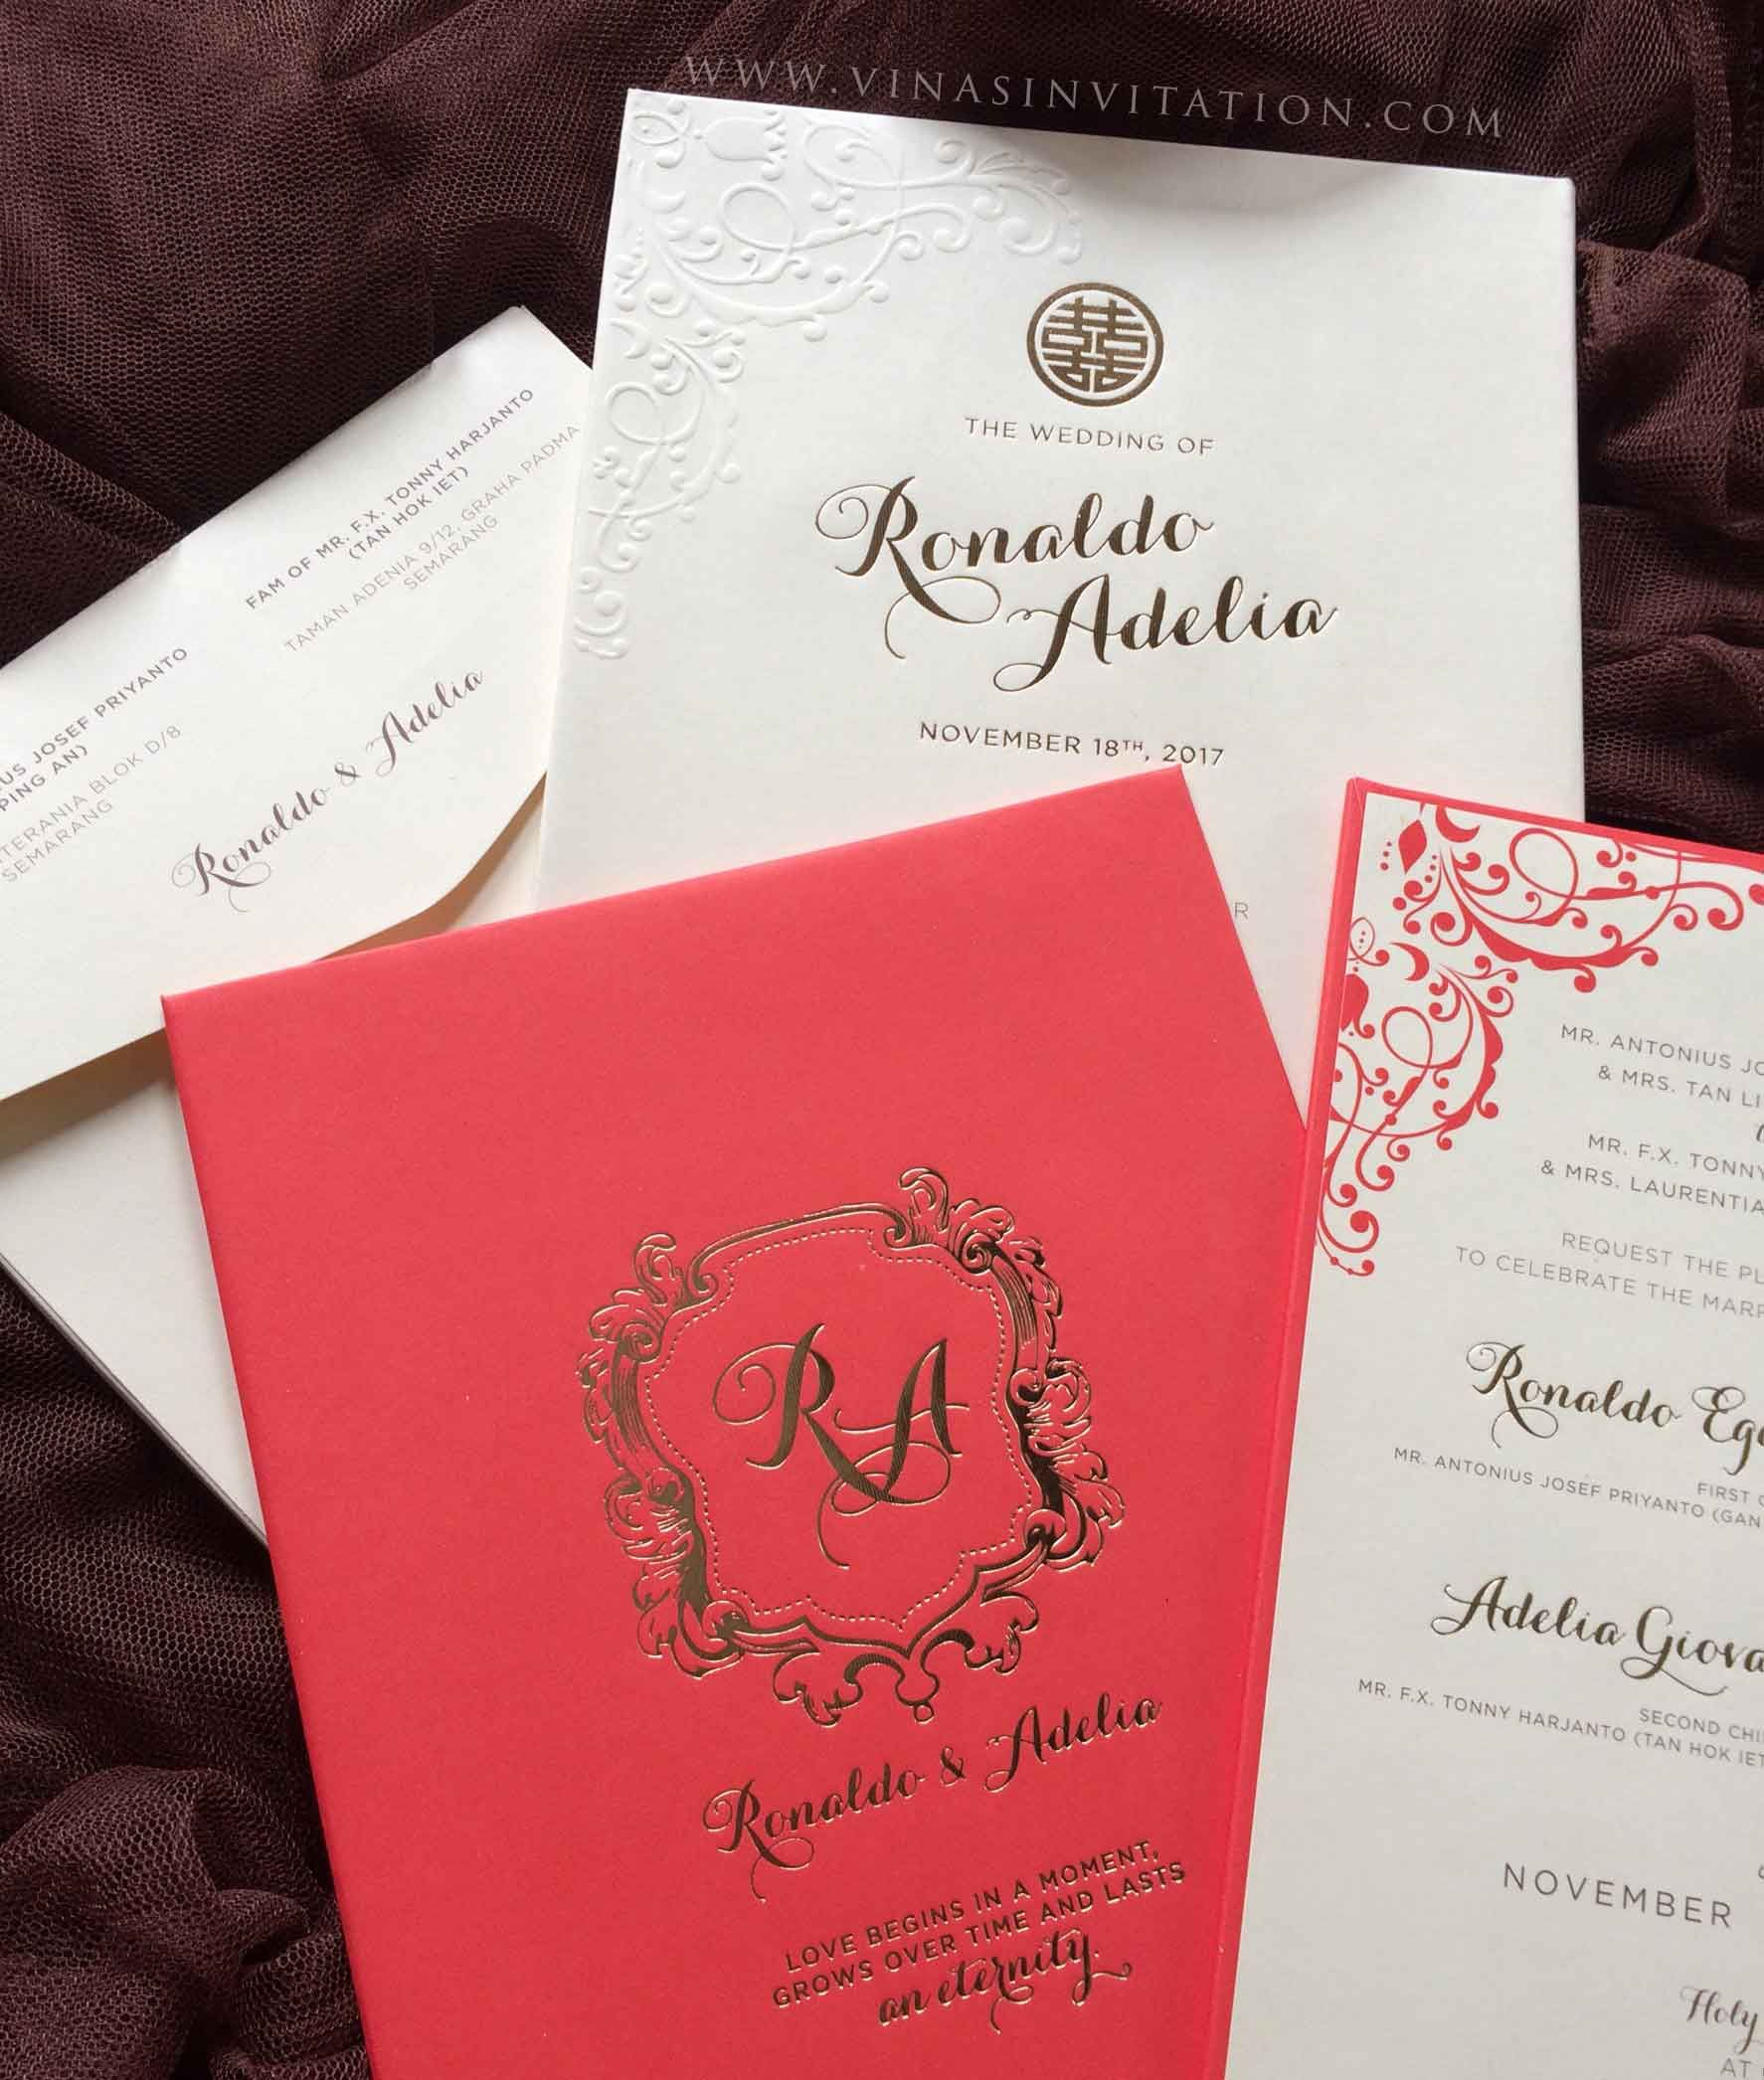 Famous Wedding Invites Sydney Gift - Invitations and Announcements ...